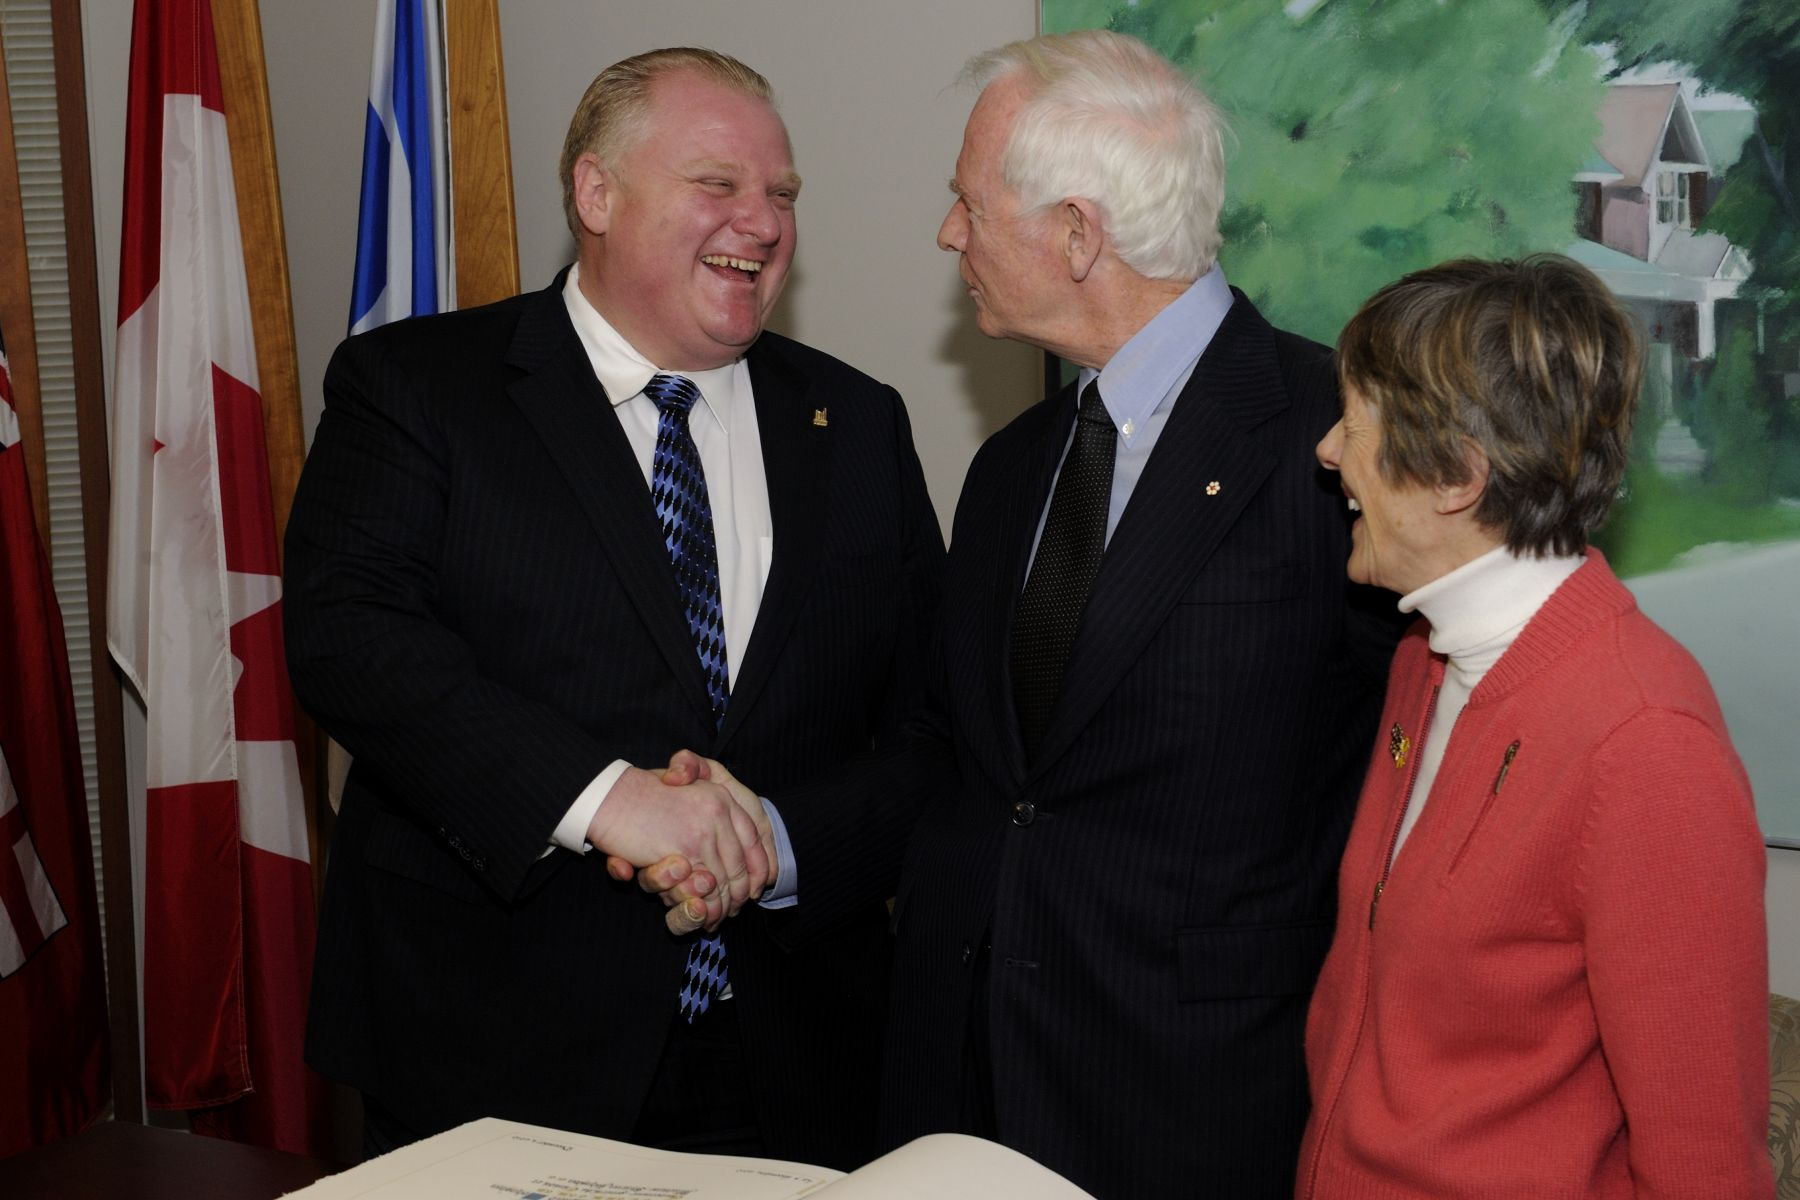 The official visit to Ontario ended with a meeting at City Hall with His Worship Rob Ford, Mayor of Toronto. During the meeting, Their Excellencies signed the official guest book.